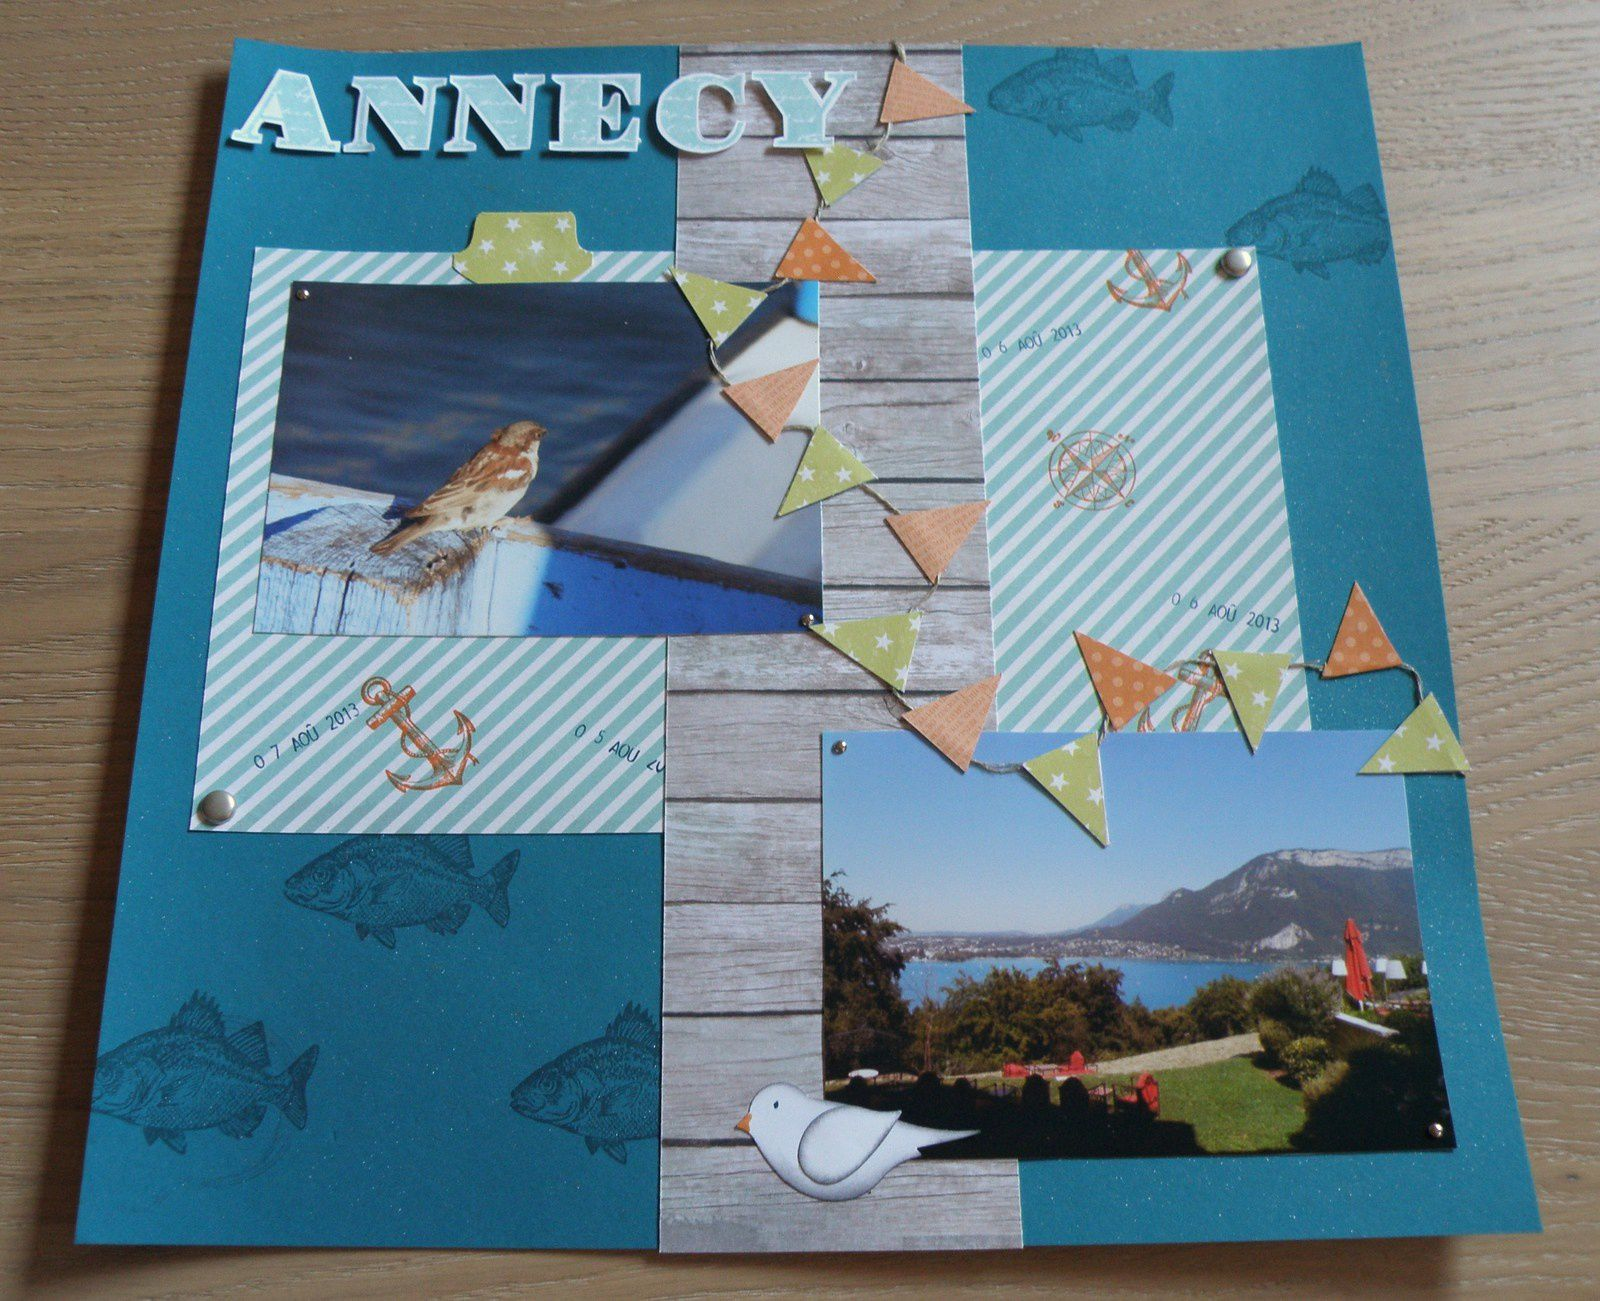 Page Annecy